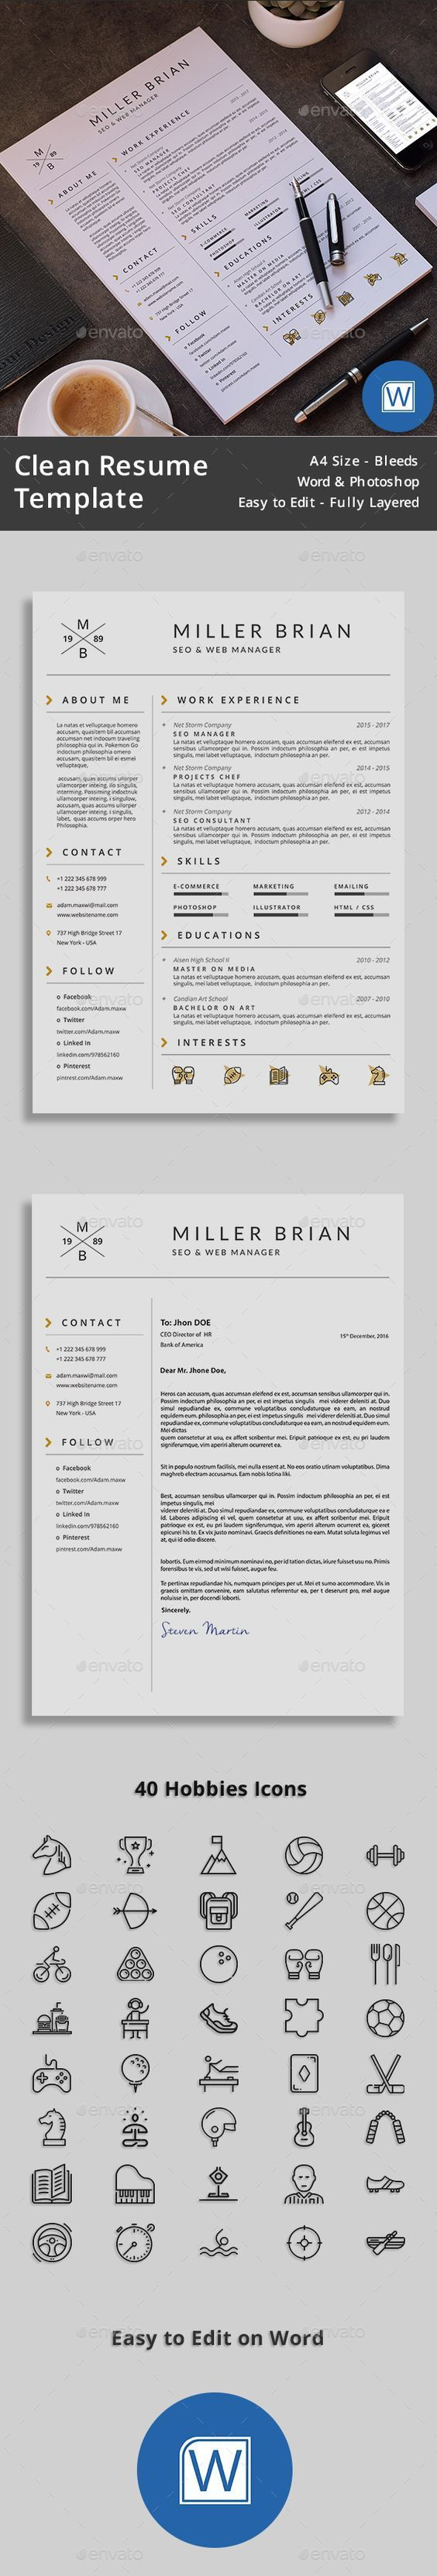 microsoft word letter of resignation%0A Professional  u     Modern Resume Template for MS Word   CV Template for word    Resume template for word       Editable   Instant Digital Download   US  Letter